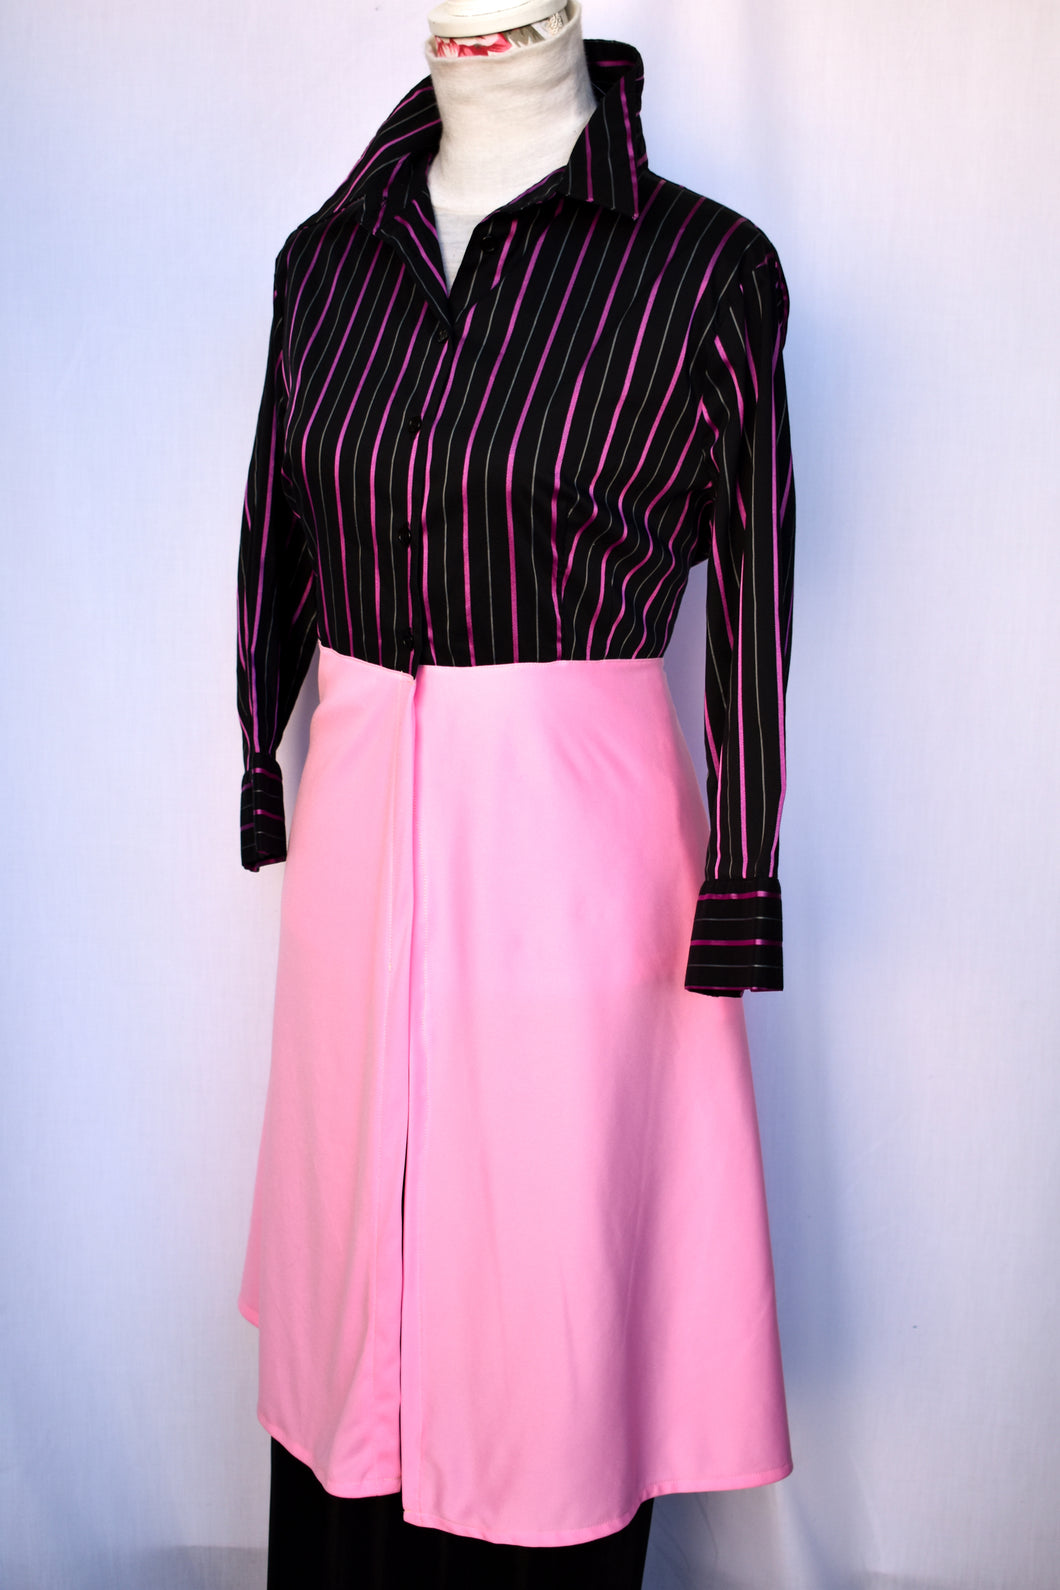 Coolie NZ dress, size S